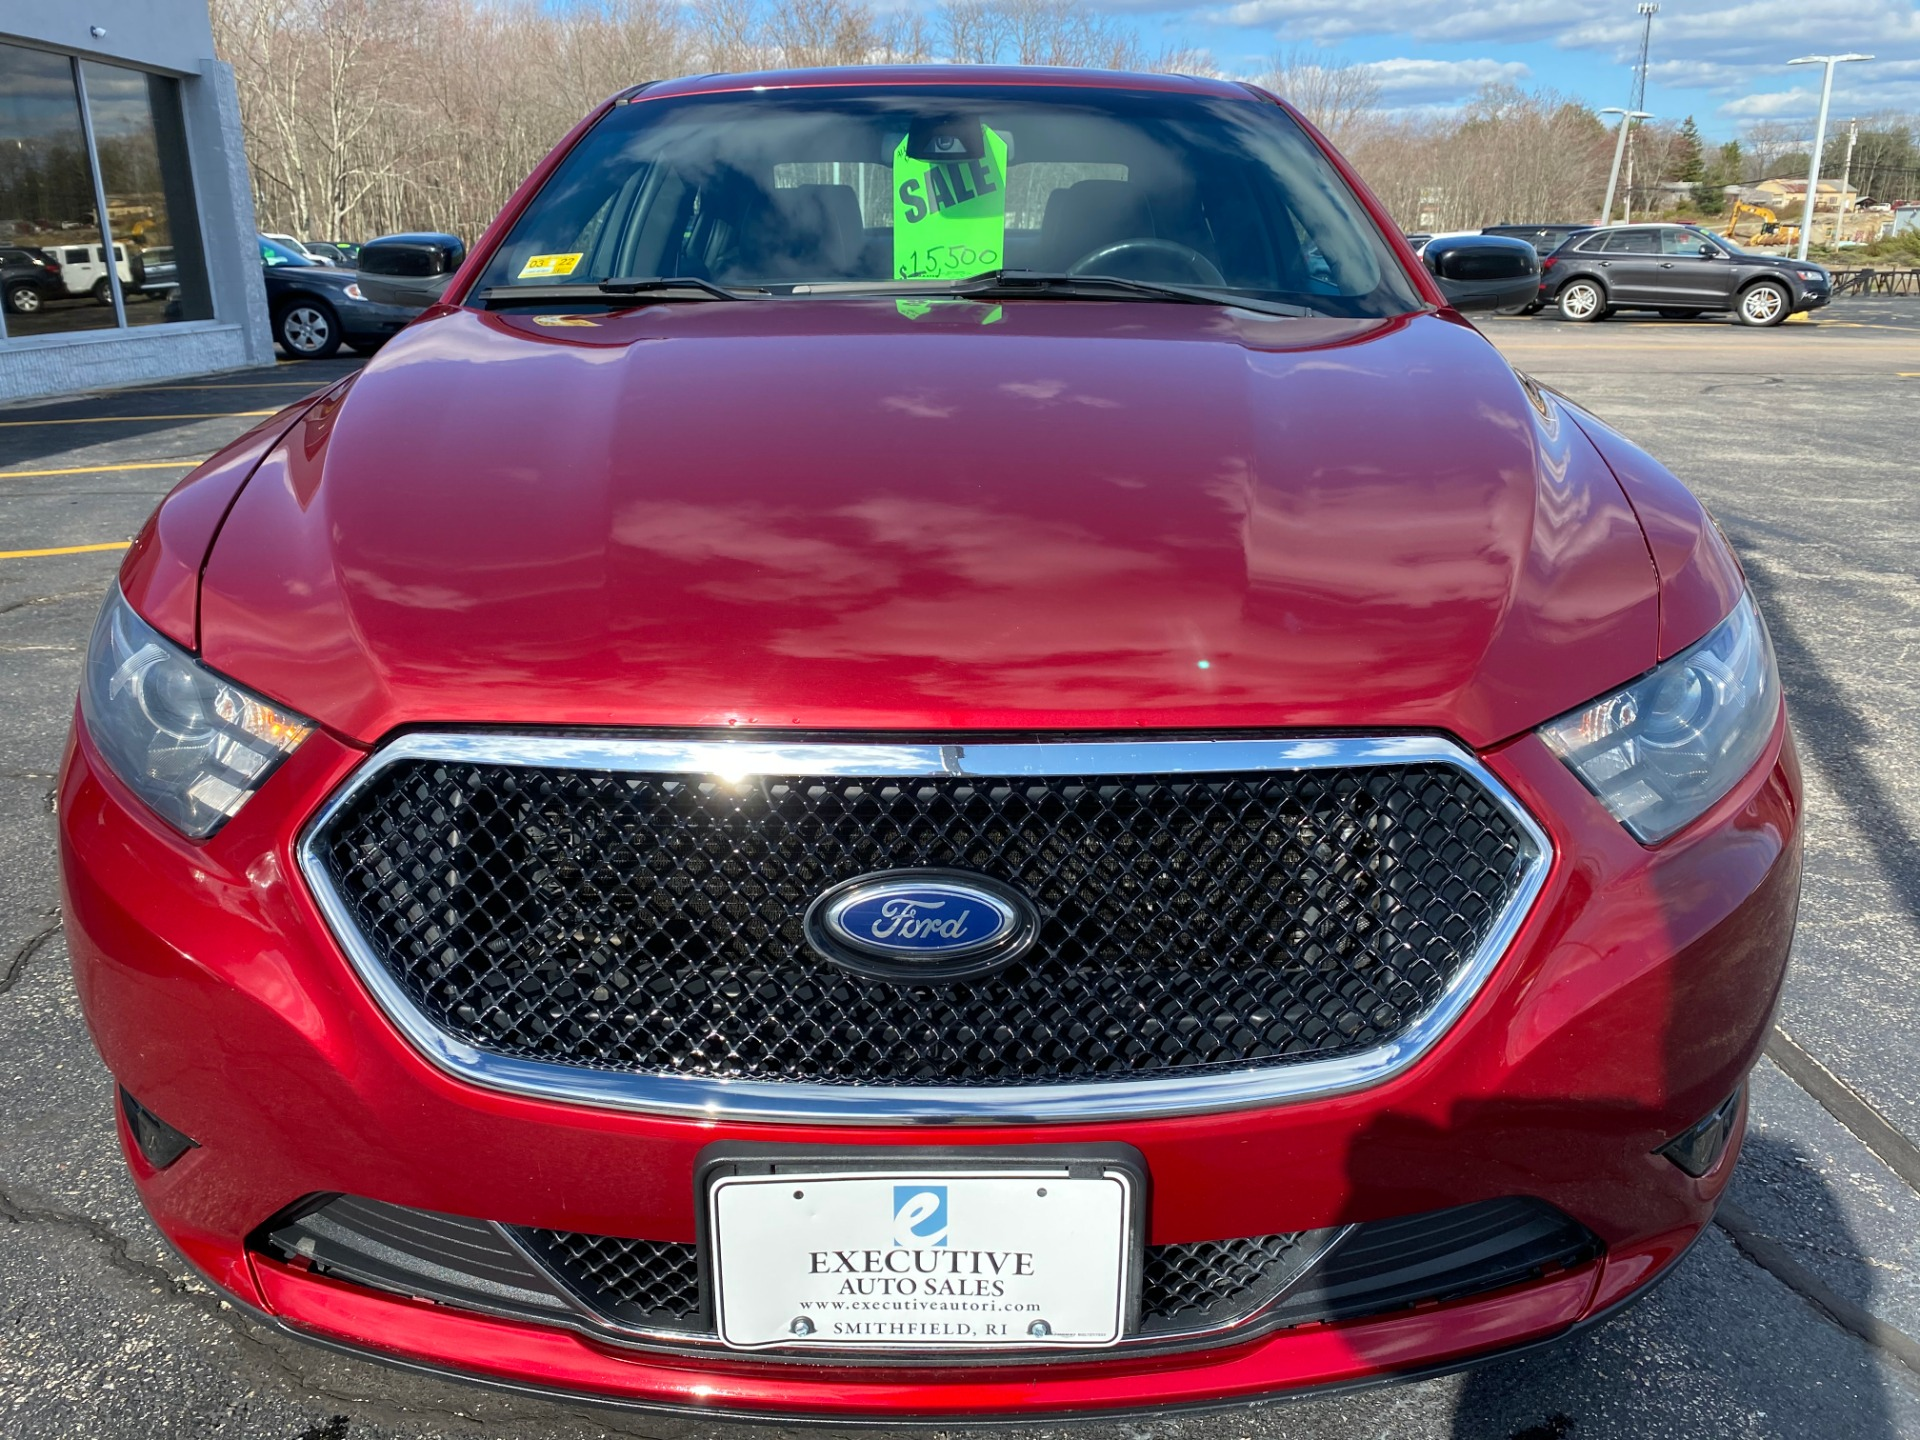 Used 2014 Ford Taurus Sho Sho For Sale 15 250 Executive Auto Sales Stock 2025